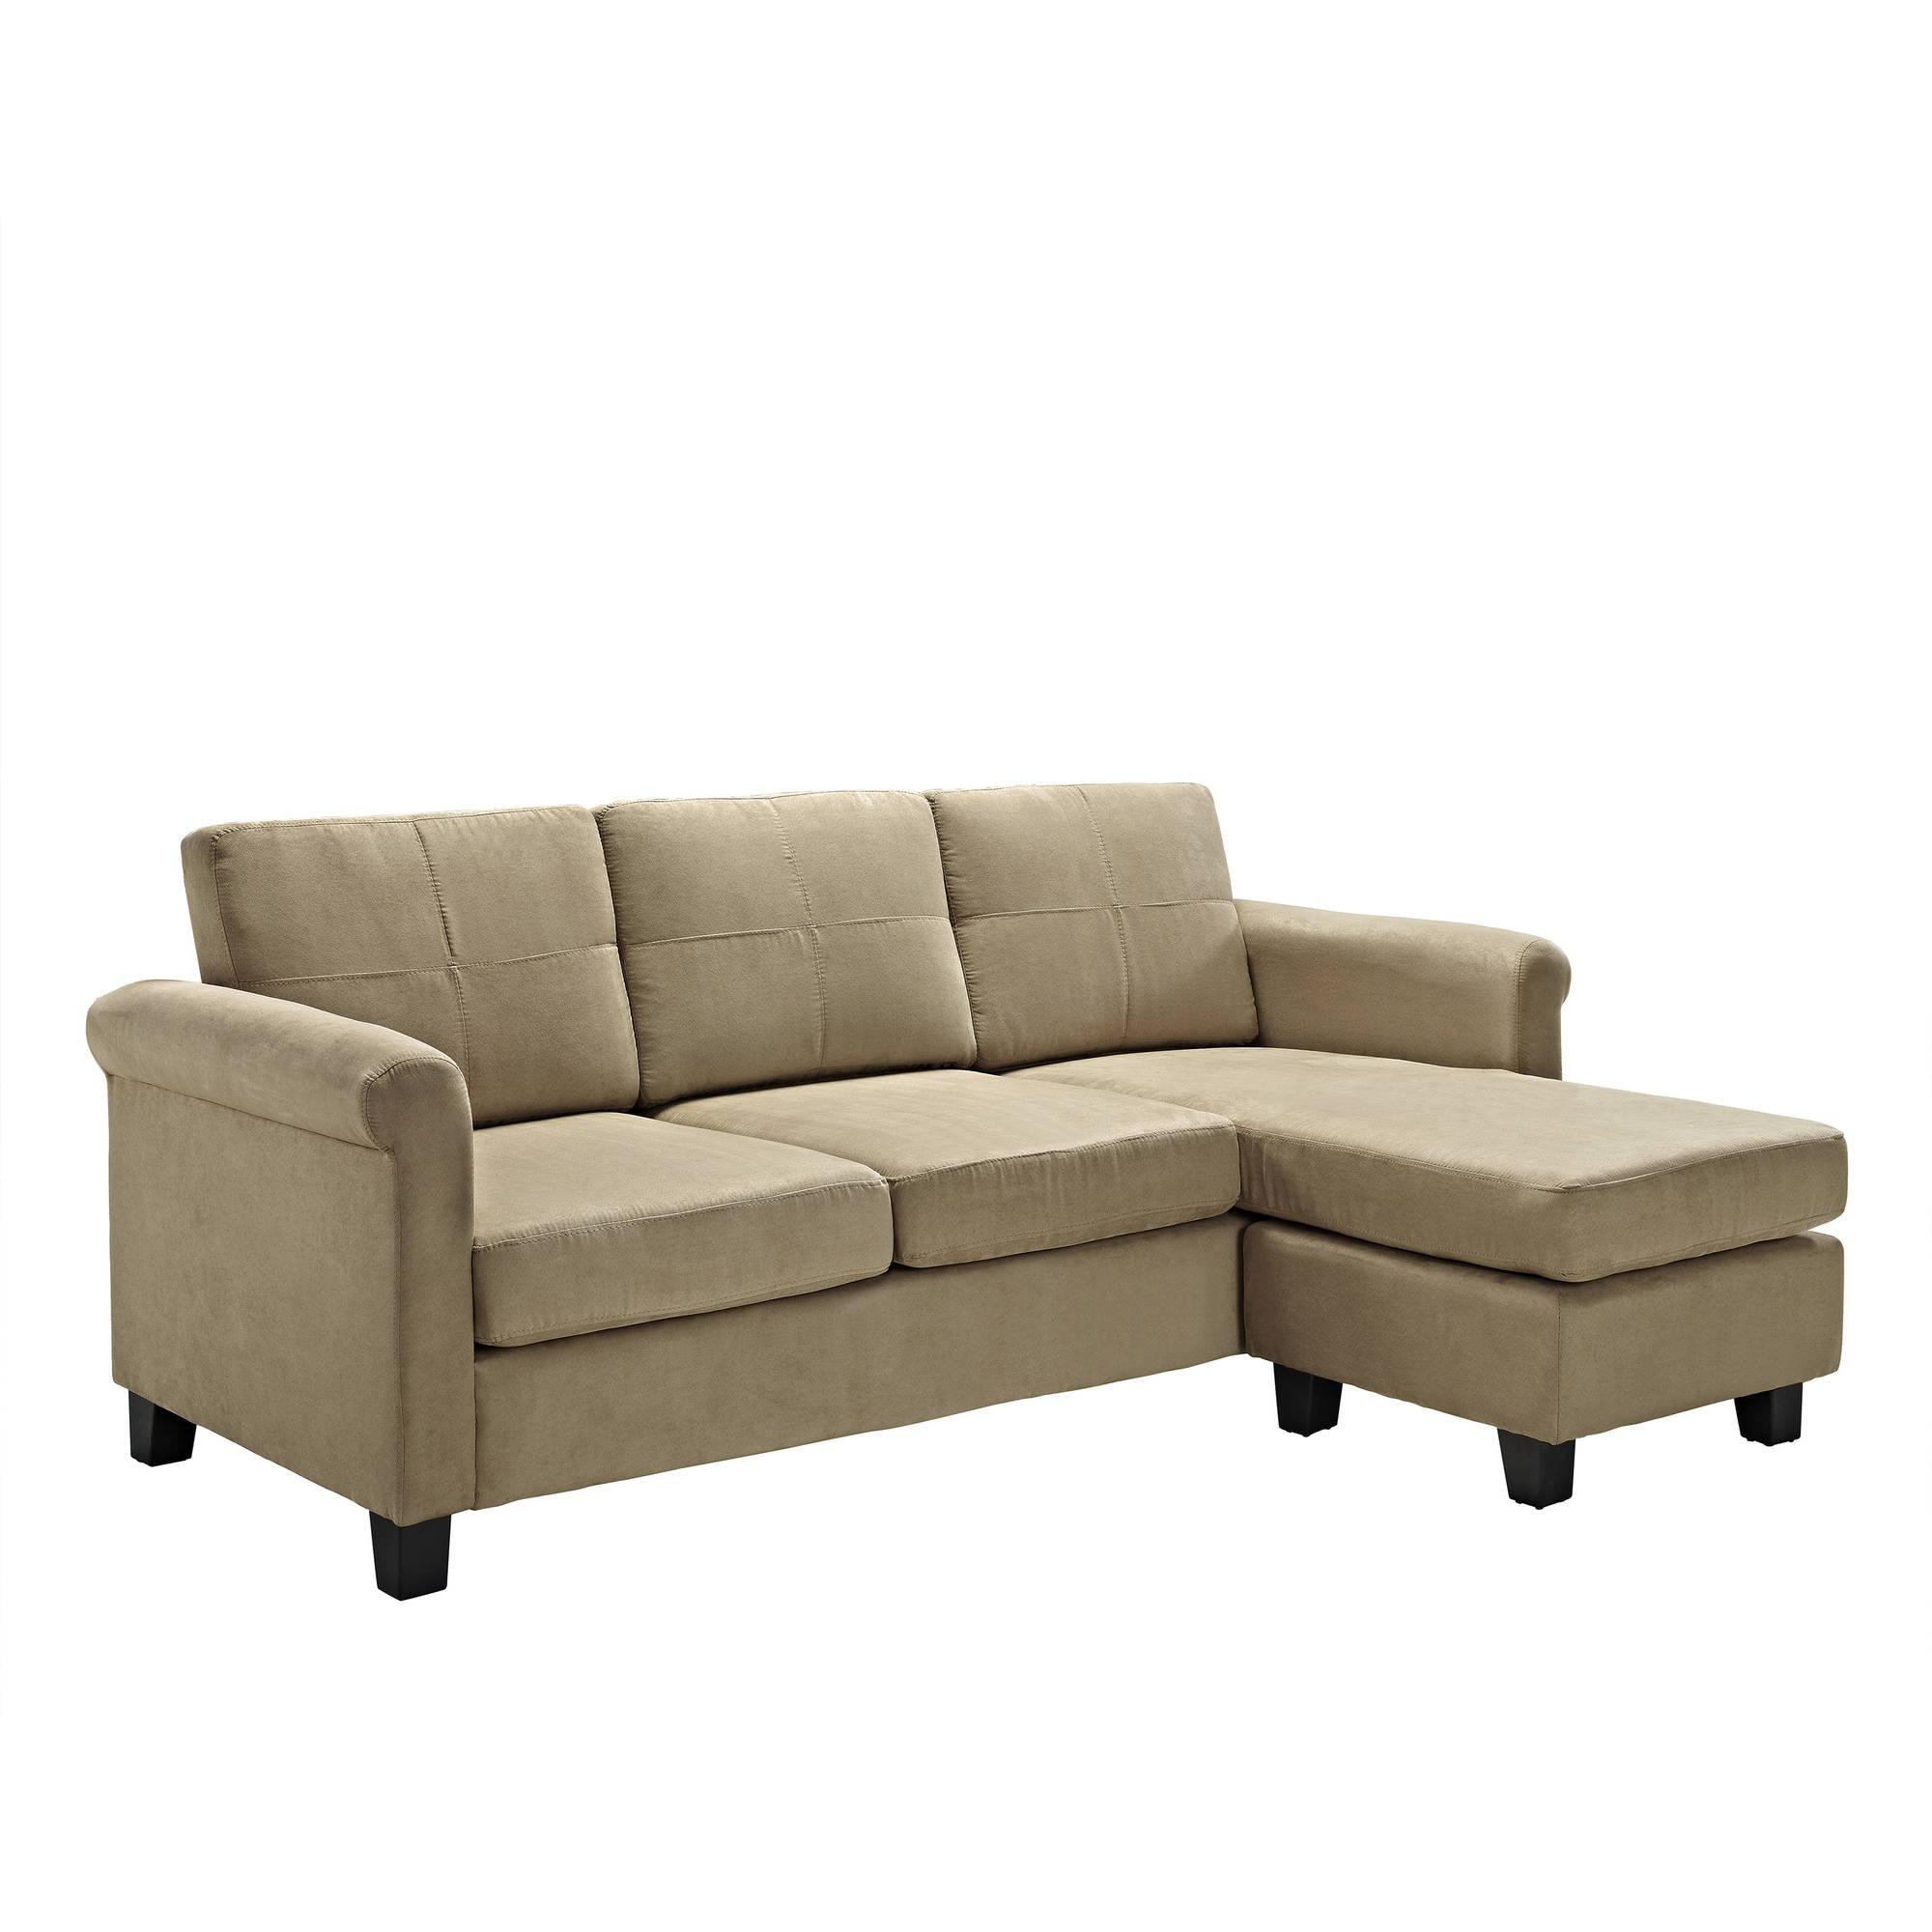 Dorel Living Small Spaces Configurable Sectional Sofa, Multiple With Small Sectional Sofas For Small Spaces (Image 11 of 20)